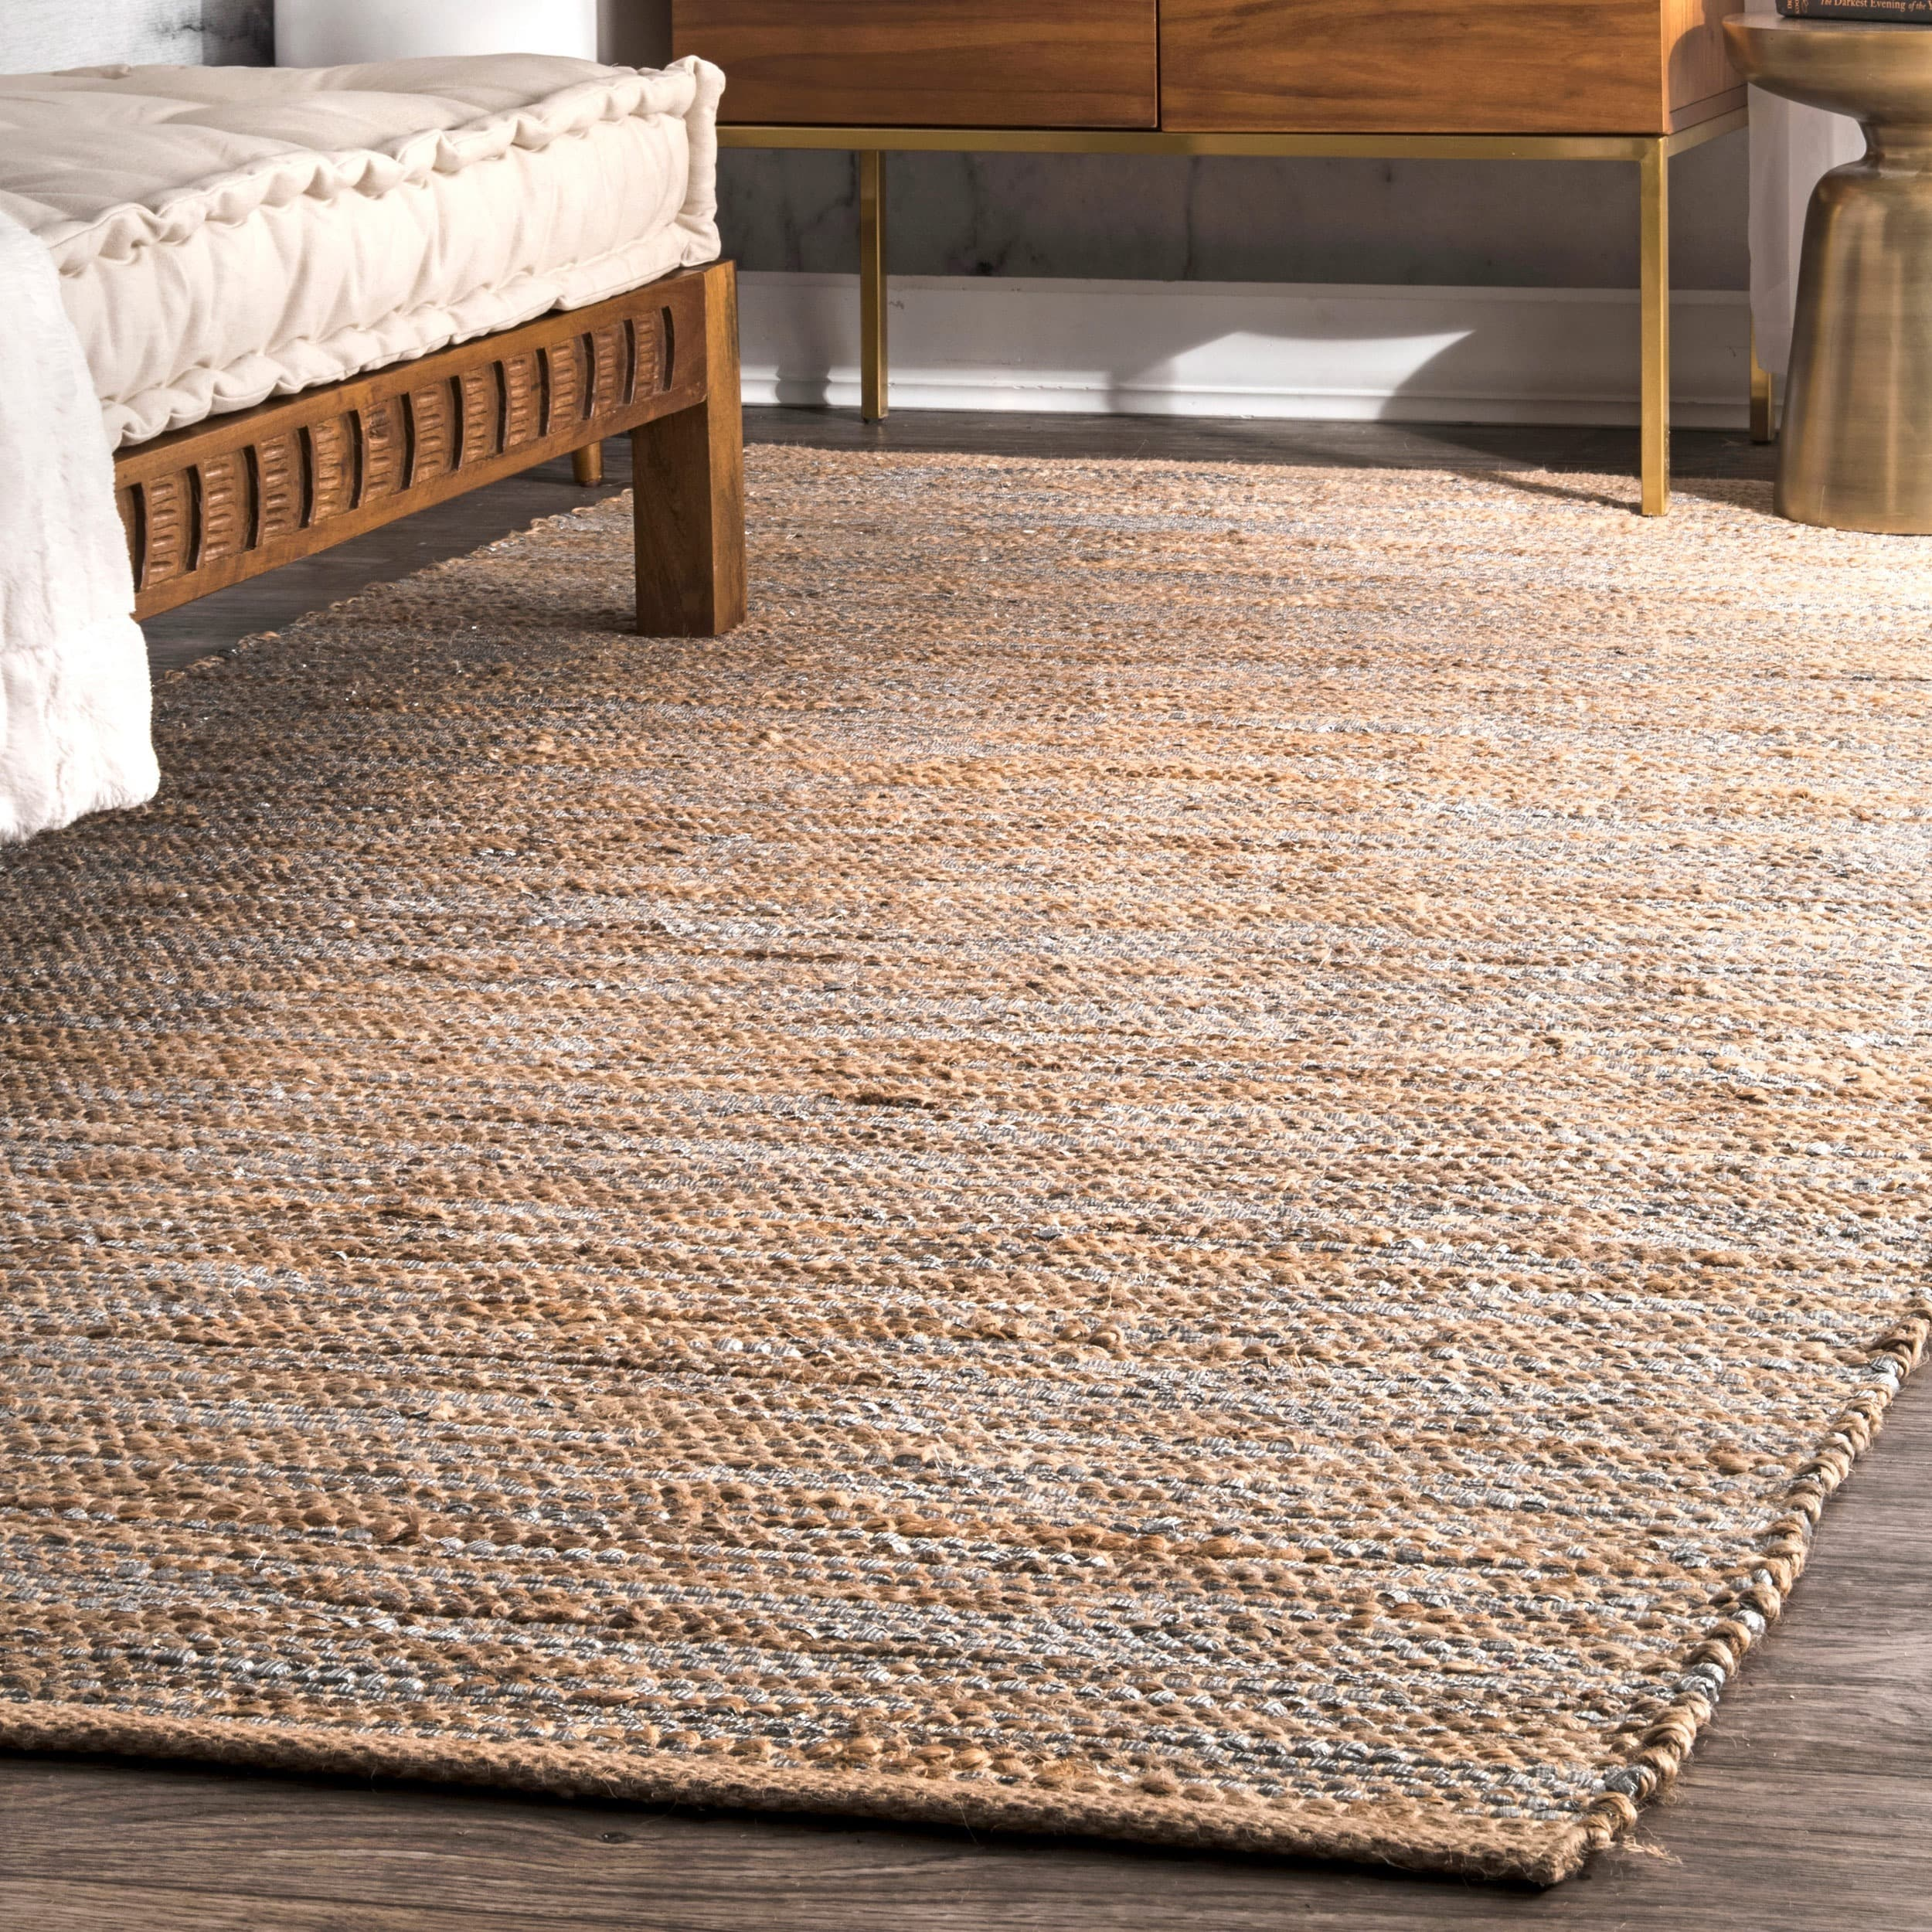 rug world market nate chunky home great target elm marvellous braided black jute picture room gray runners berkus runner living livingroom west design overstock bleached